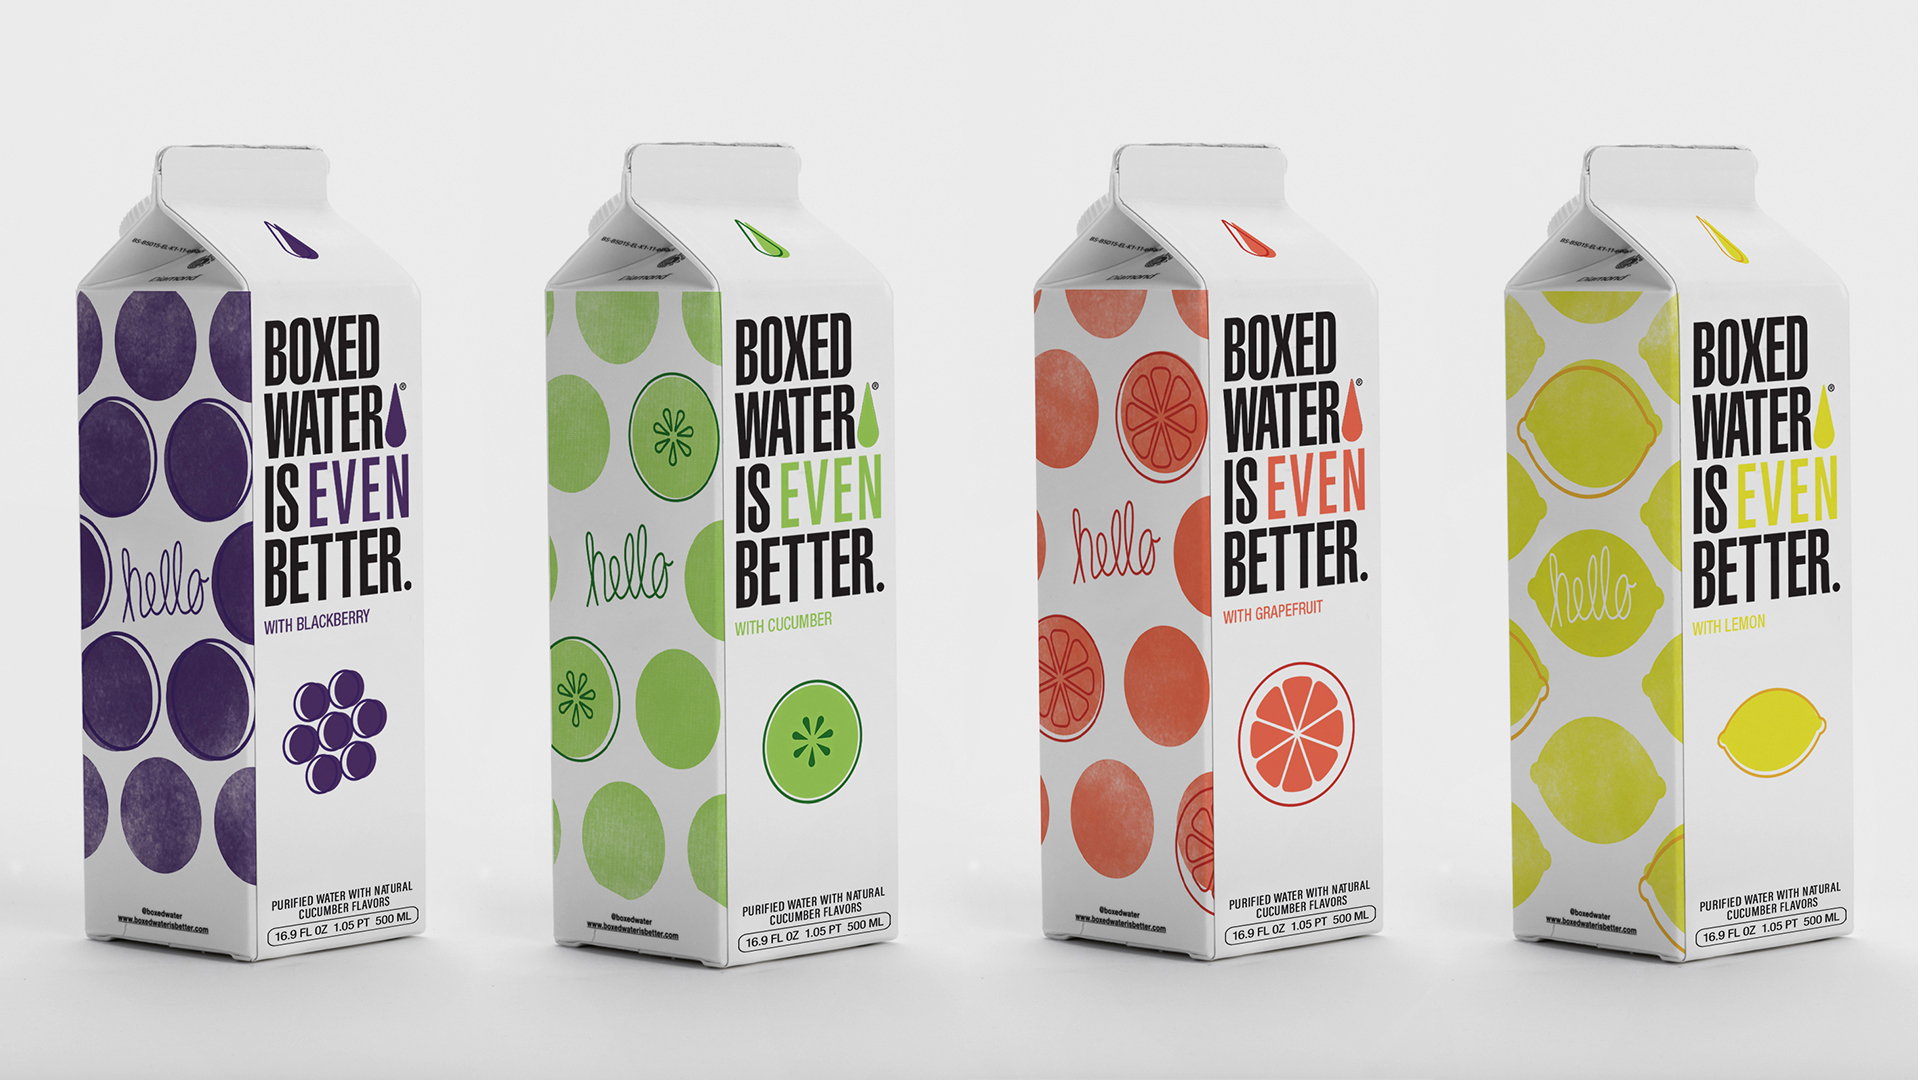 Boxed Water Is Even Better Flavors